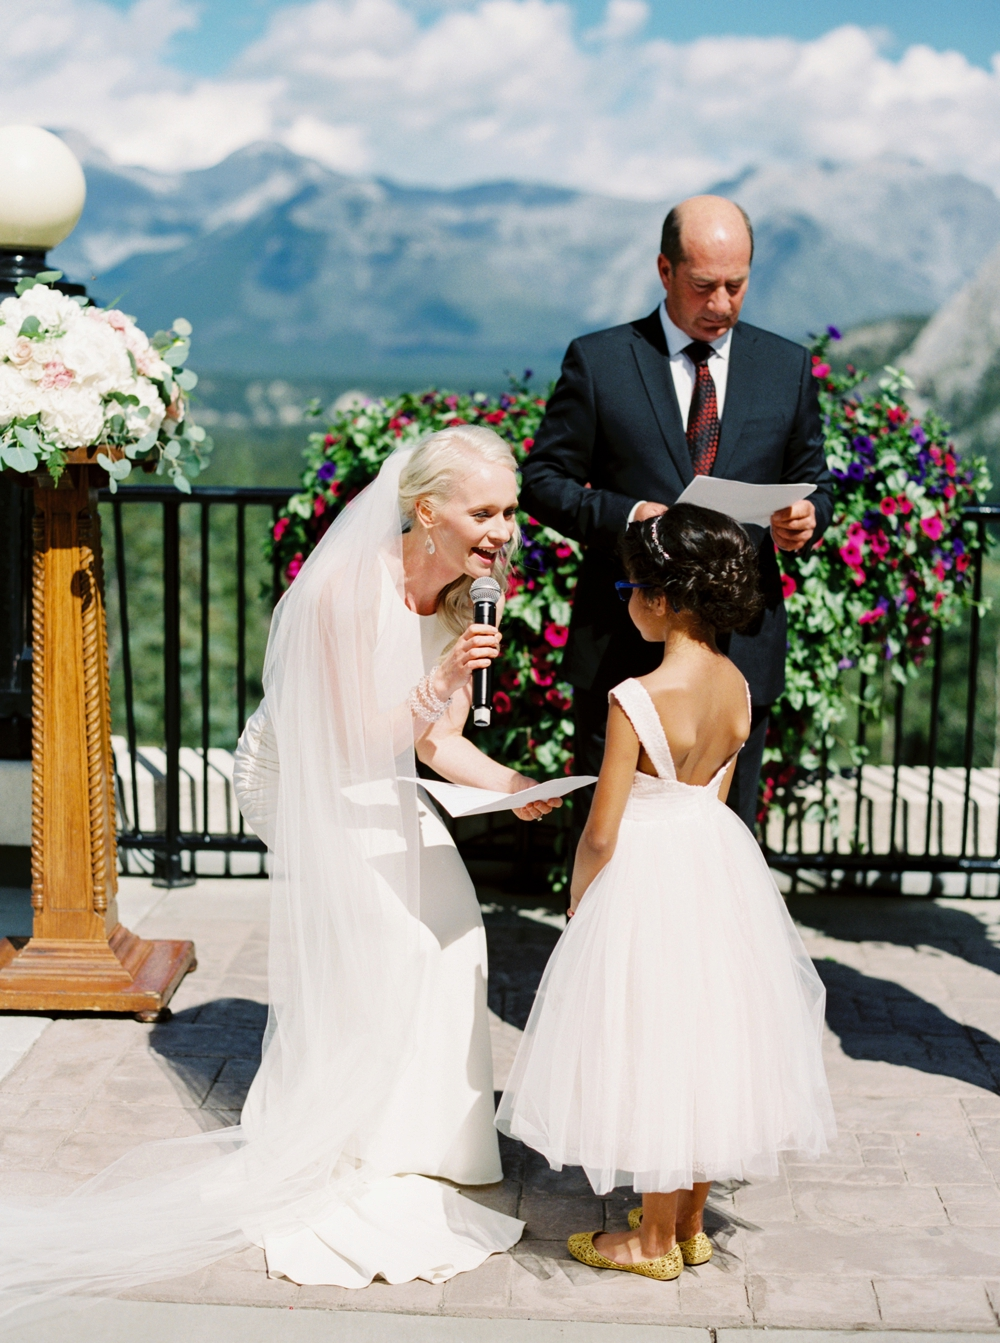 Banff Wedding Photographers | Fairmont Banff Springs Hotel Wedding | Banff Photography